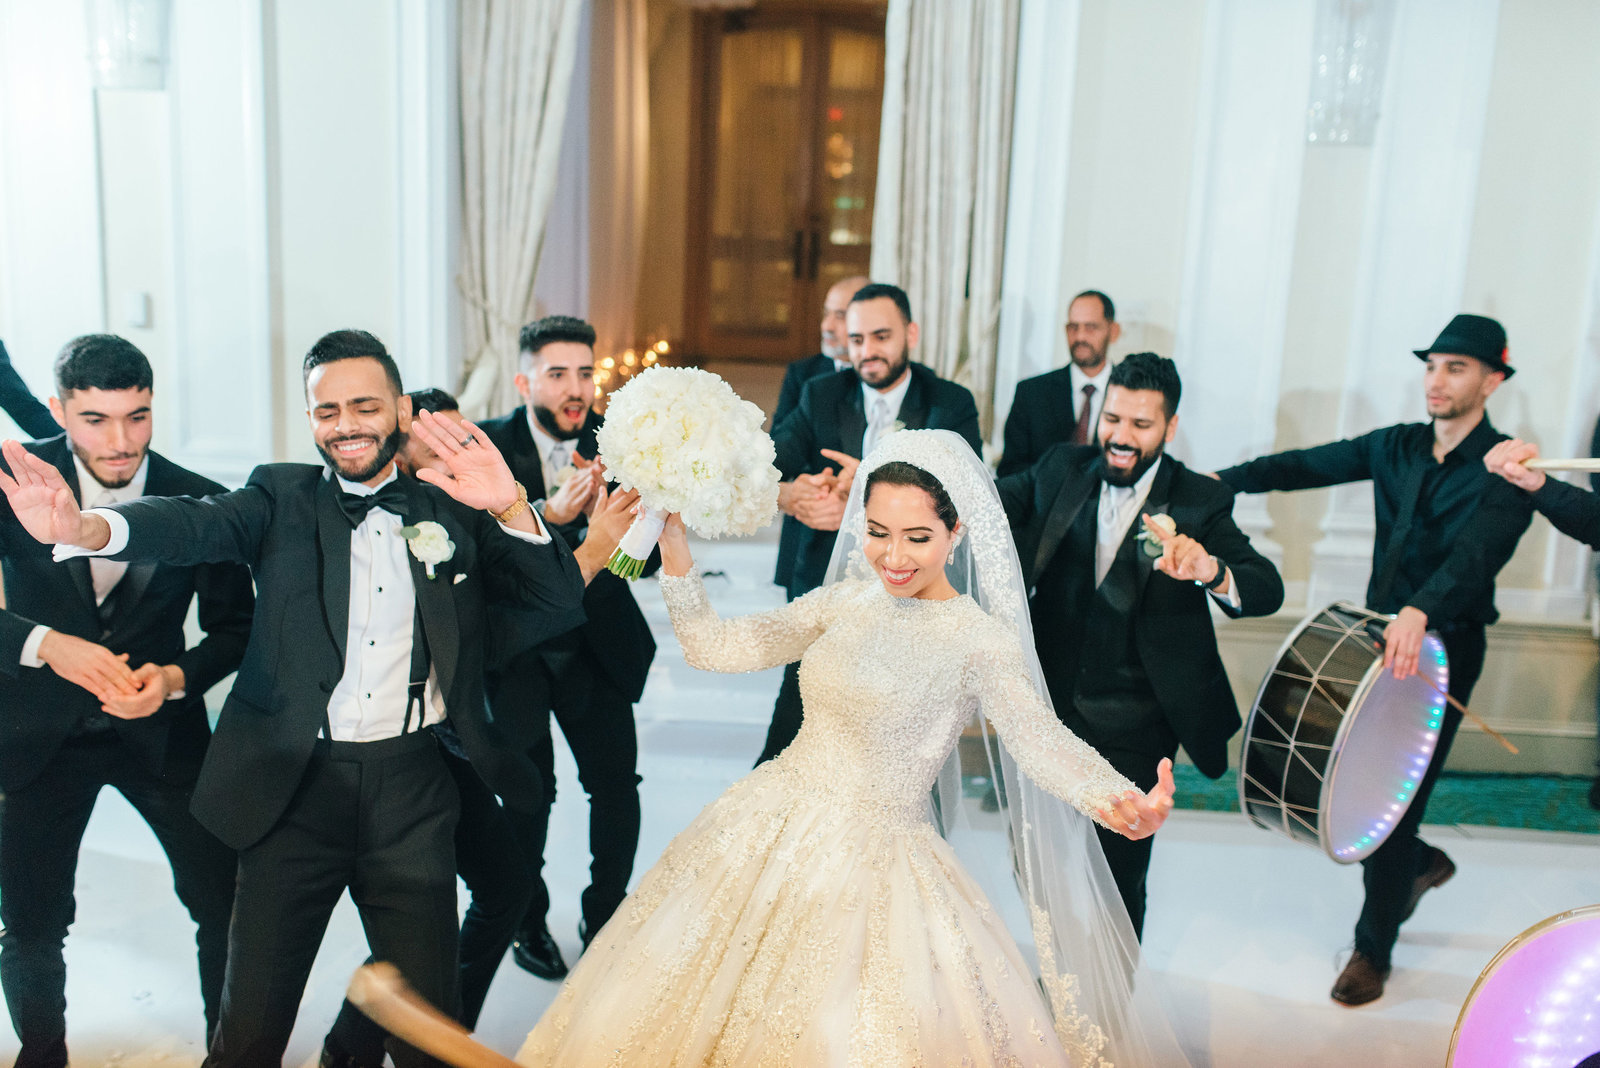 LTP_7Noor & Ahmad Vinoy Renaissance Wedding in St. Petersburg by Ledia Tashi Photography204